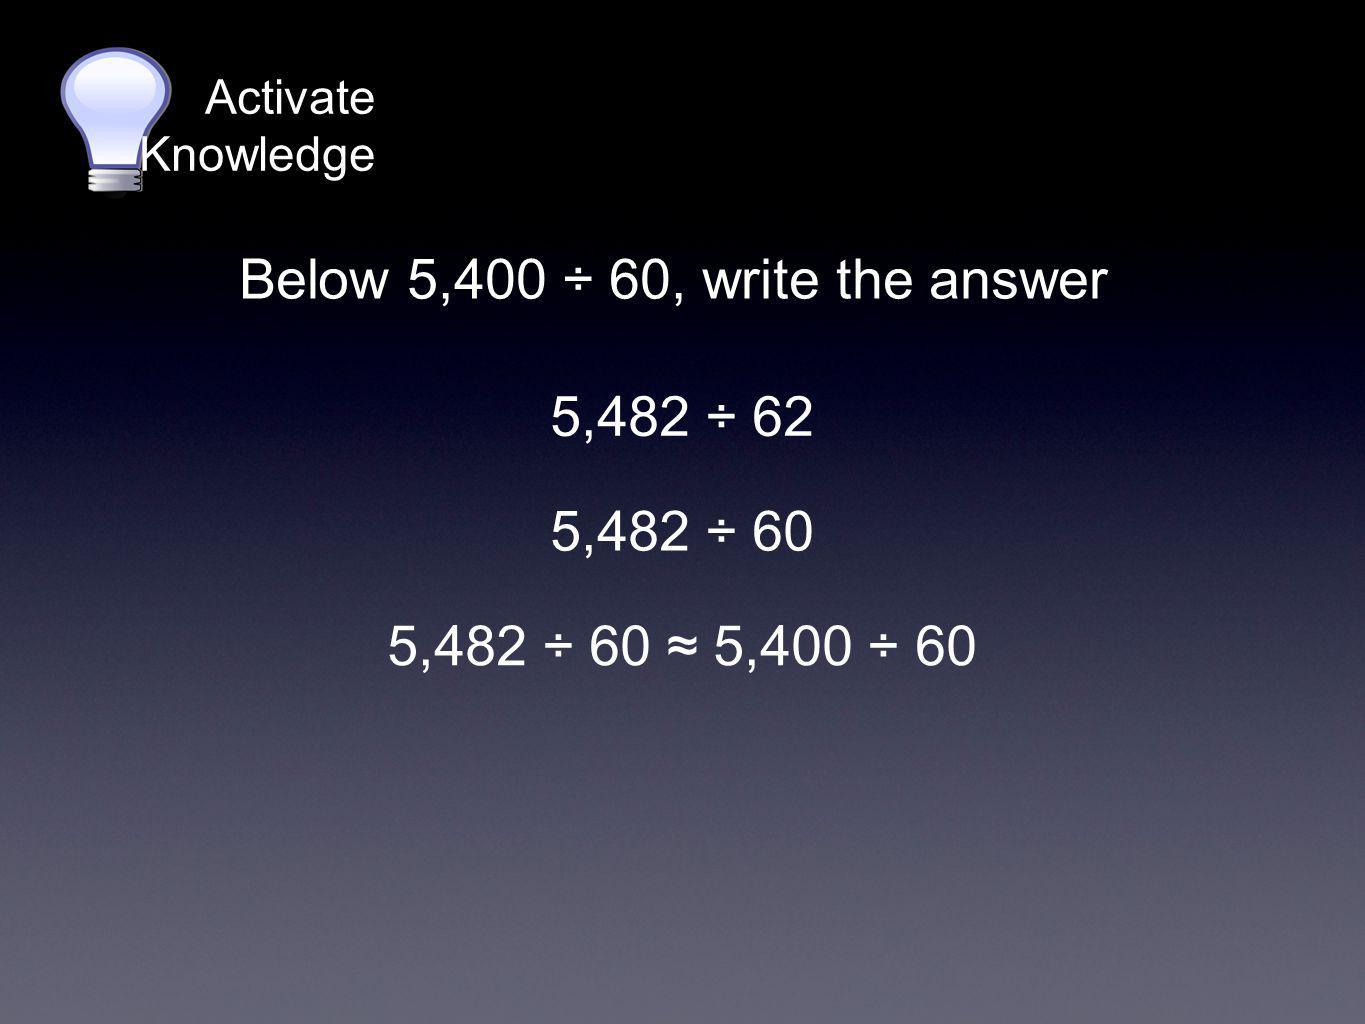 Activate Knowledge 5,482 ÷ 62 Below 5,400 ÷ 60, write the answer 5,482 ÷ 60 5,482 ÷ 60 ≈ 5,400 ÷ 60